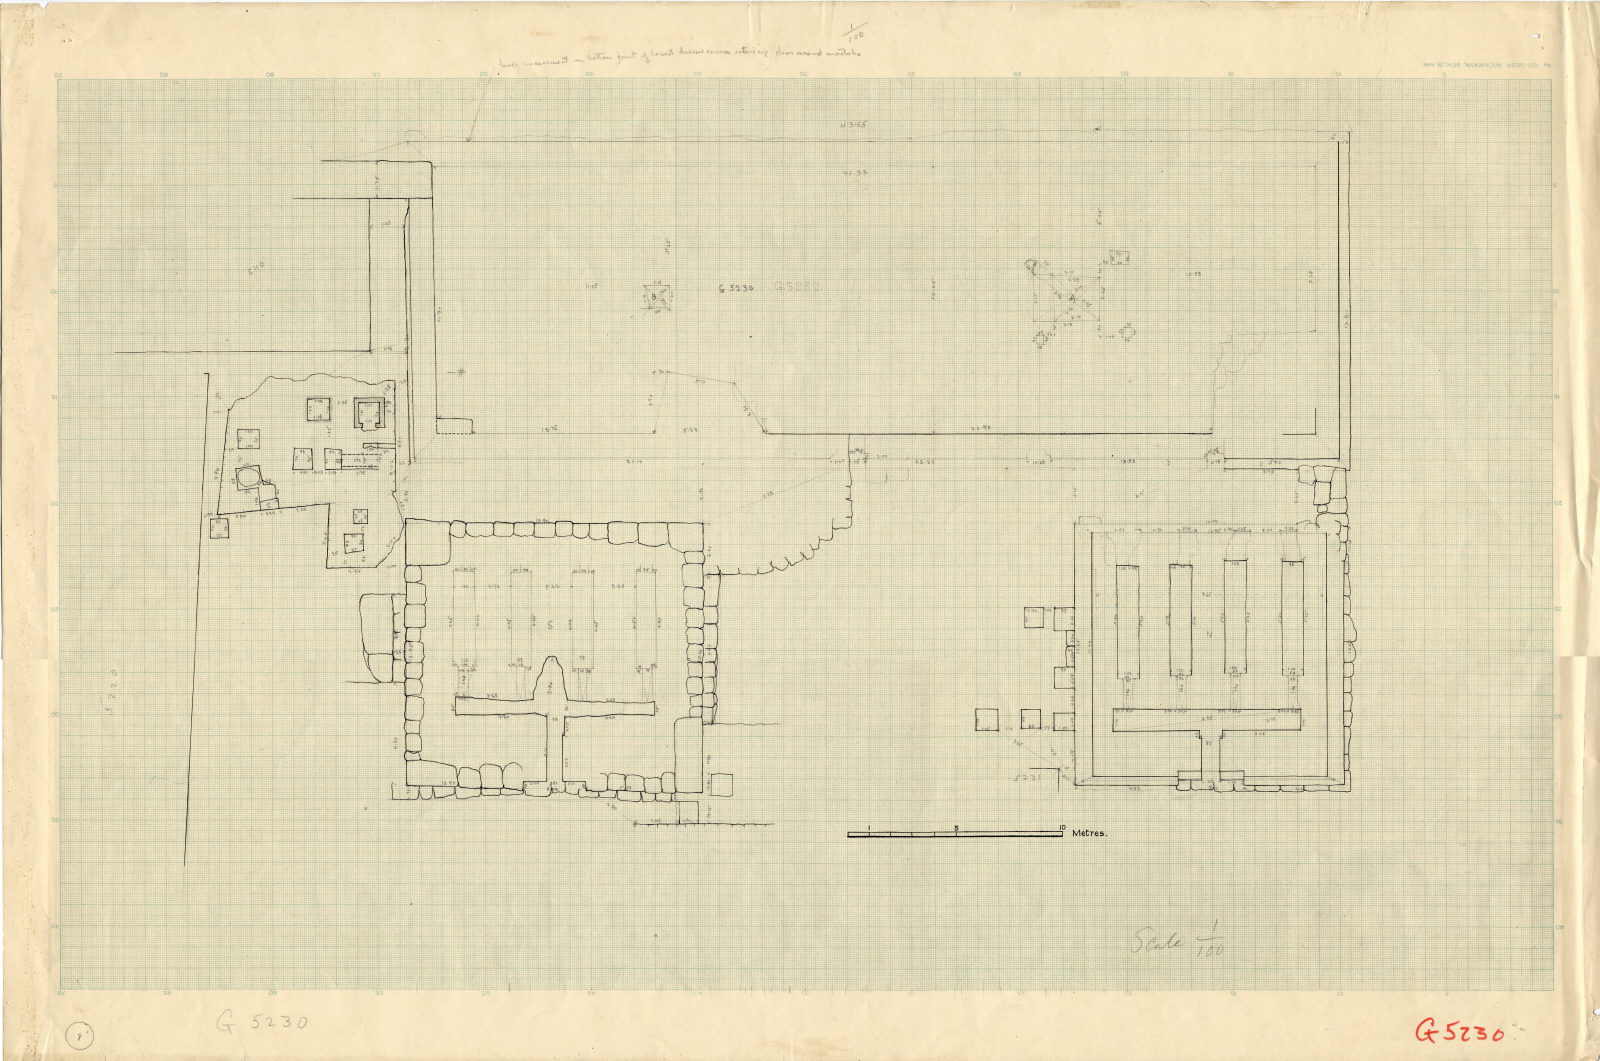 Maps and plans: Plan of G 5230, with positions of G 5110 and G 5220